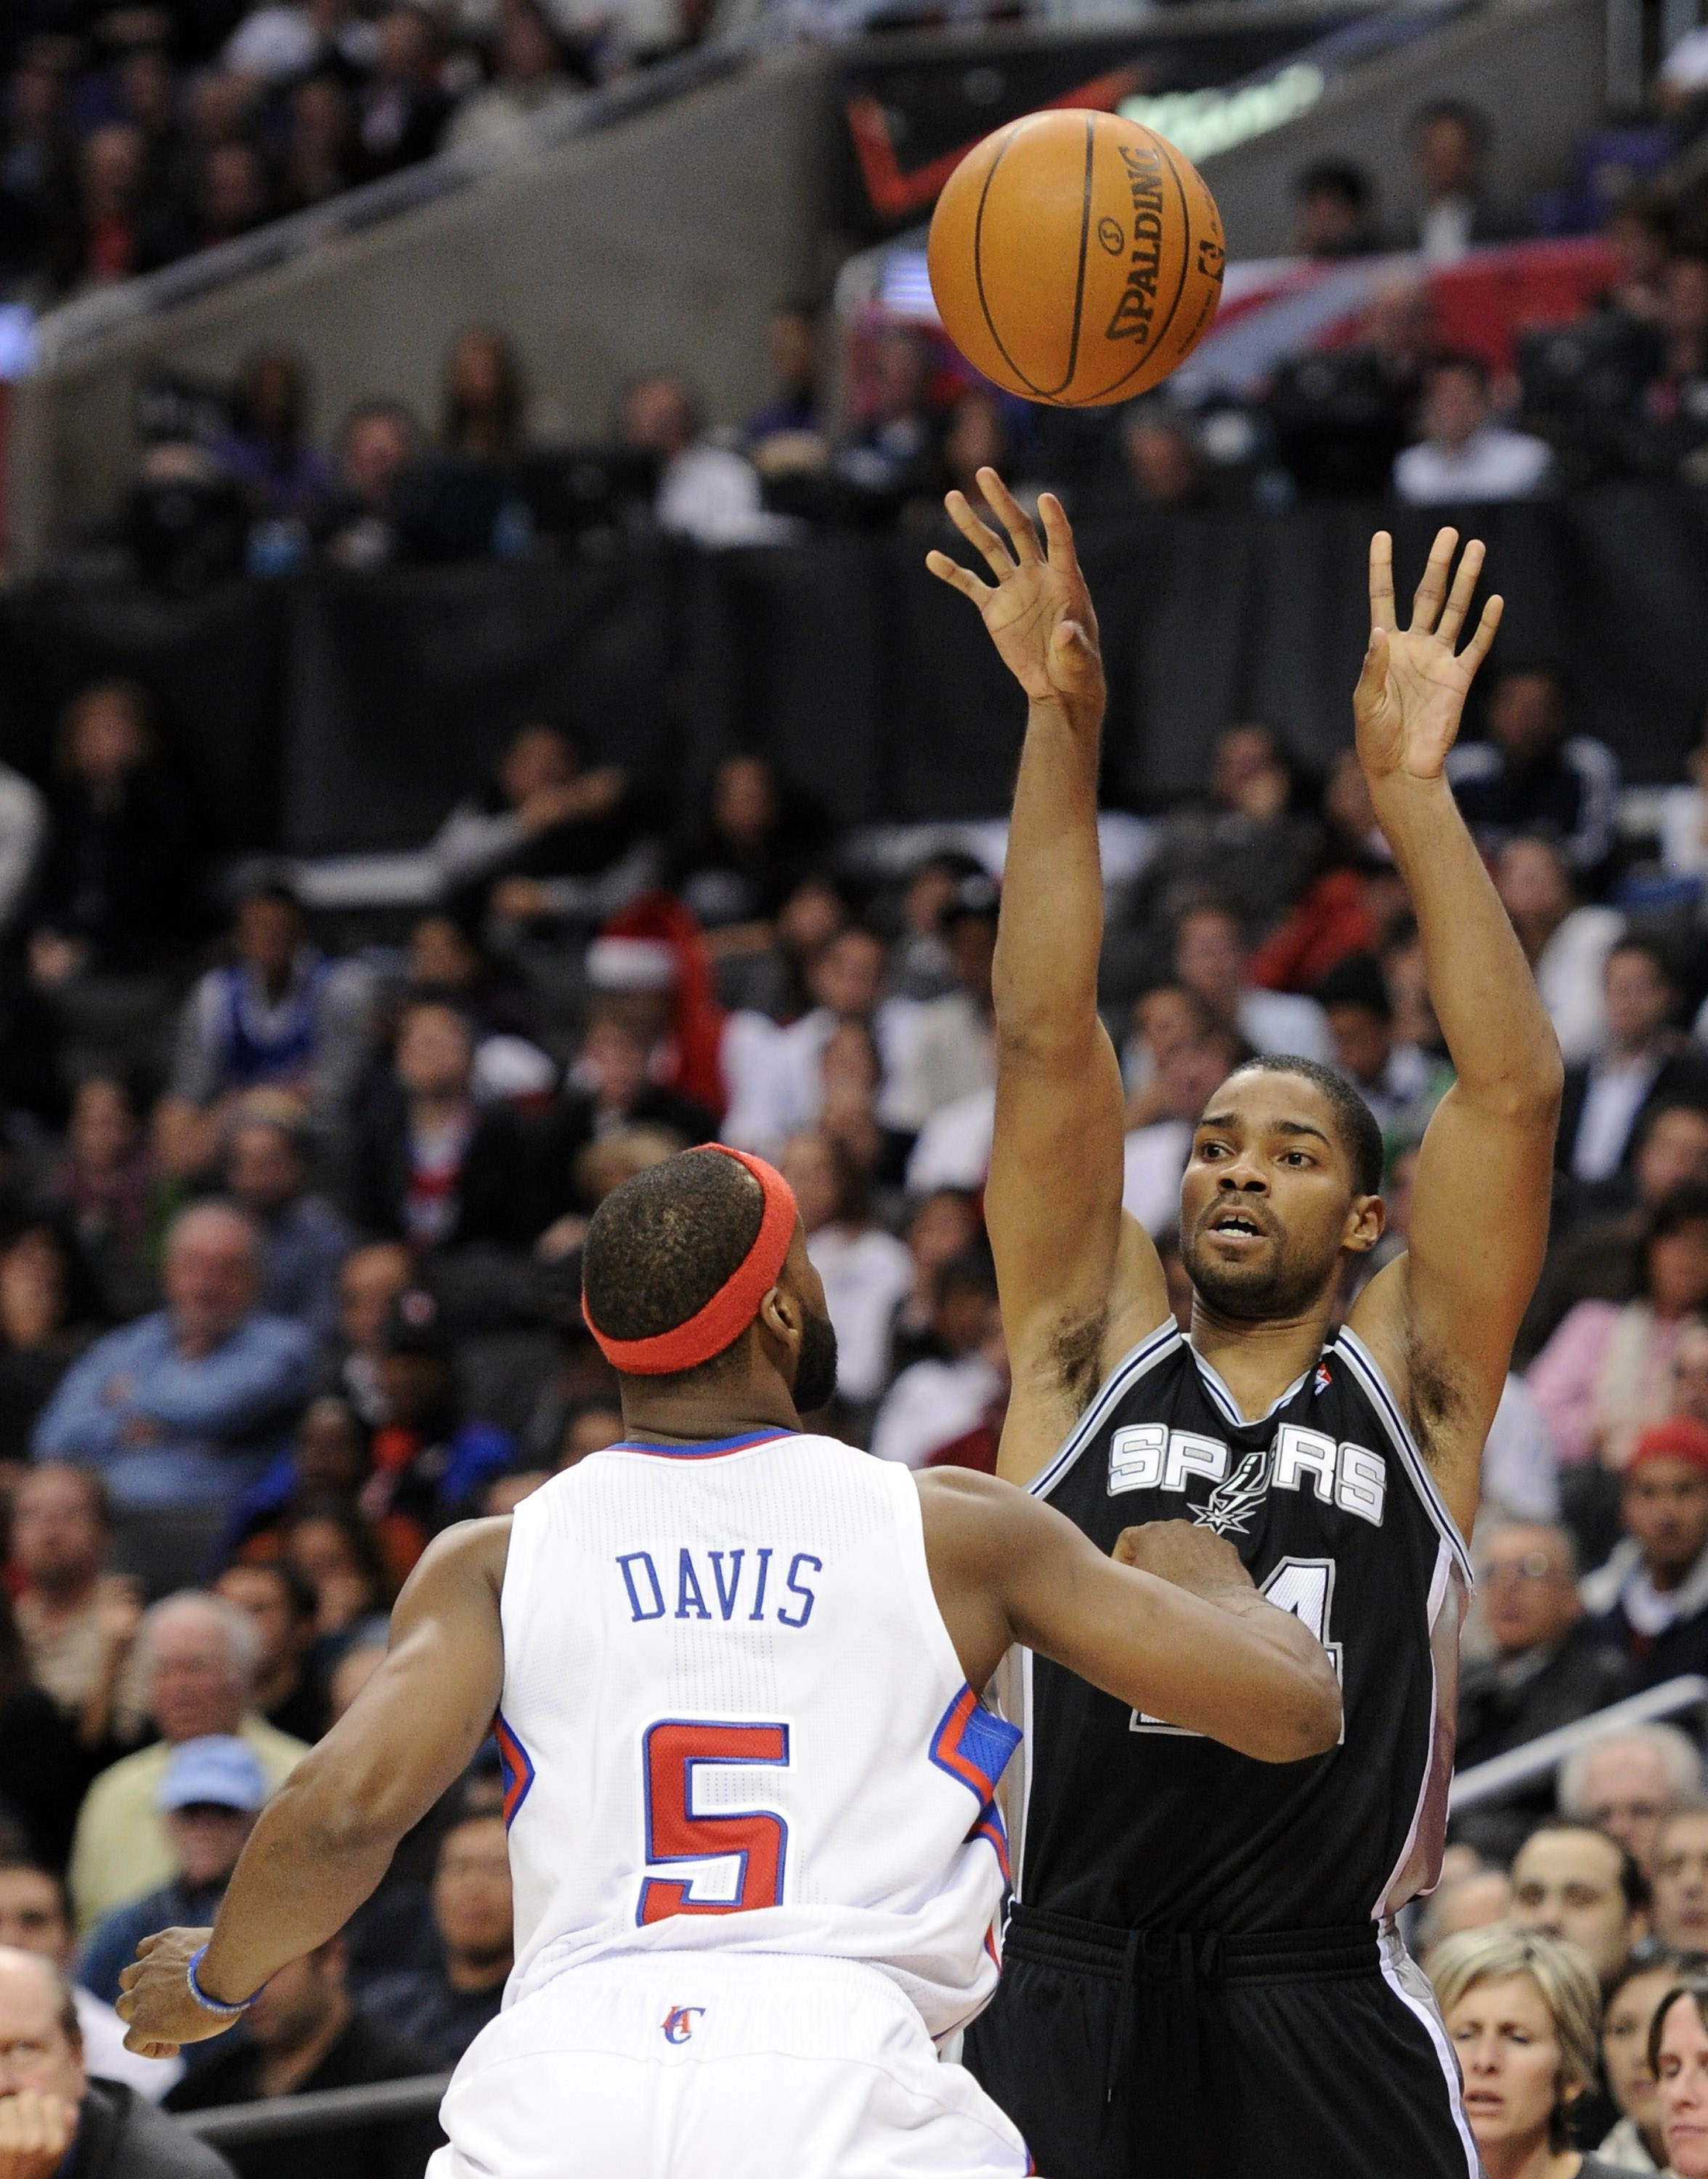 LOS ANGELES, CA - DECEMBER 01:  Gary Neal #14 of the San Antonio Spurs makes a pass over Baron Davis #5 of the Los Angeles Clippers at the Staples Center on December 1, 2010 in Los Angeles, California.  NOTE TO USER: User expressly acknowledges and agrees